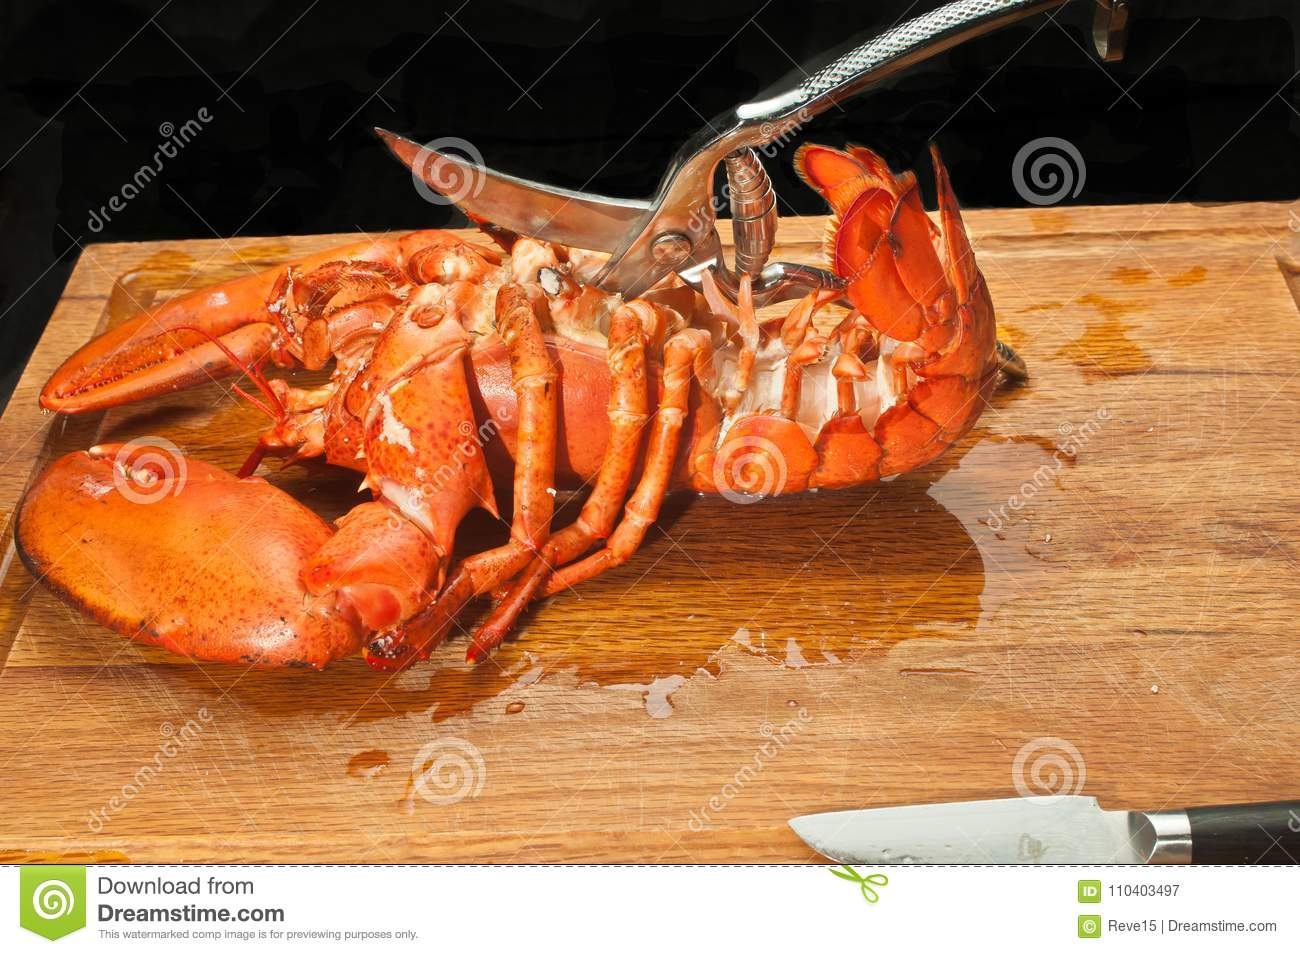 Large Streamed Lobster Cut Shell Of Thoracic Area With Kitchen